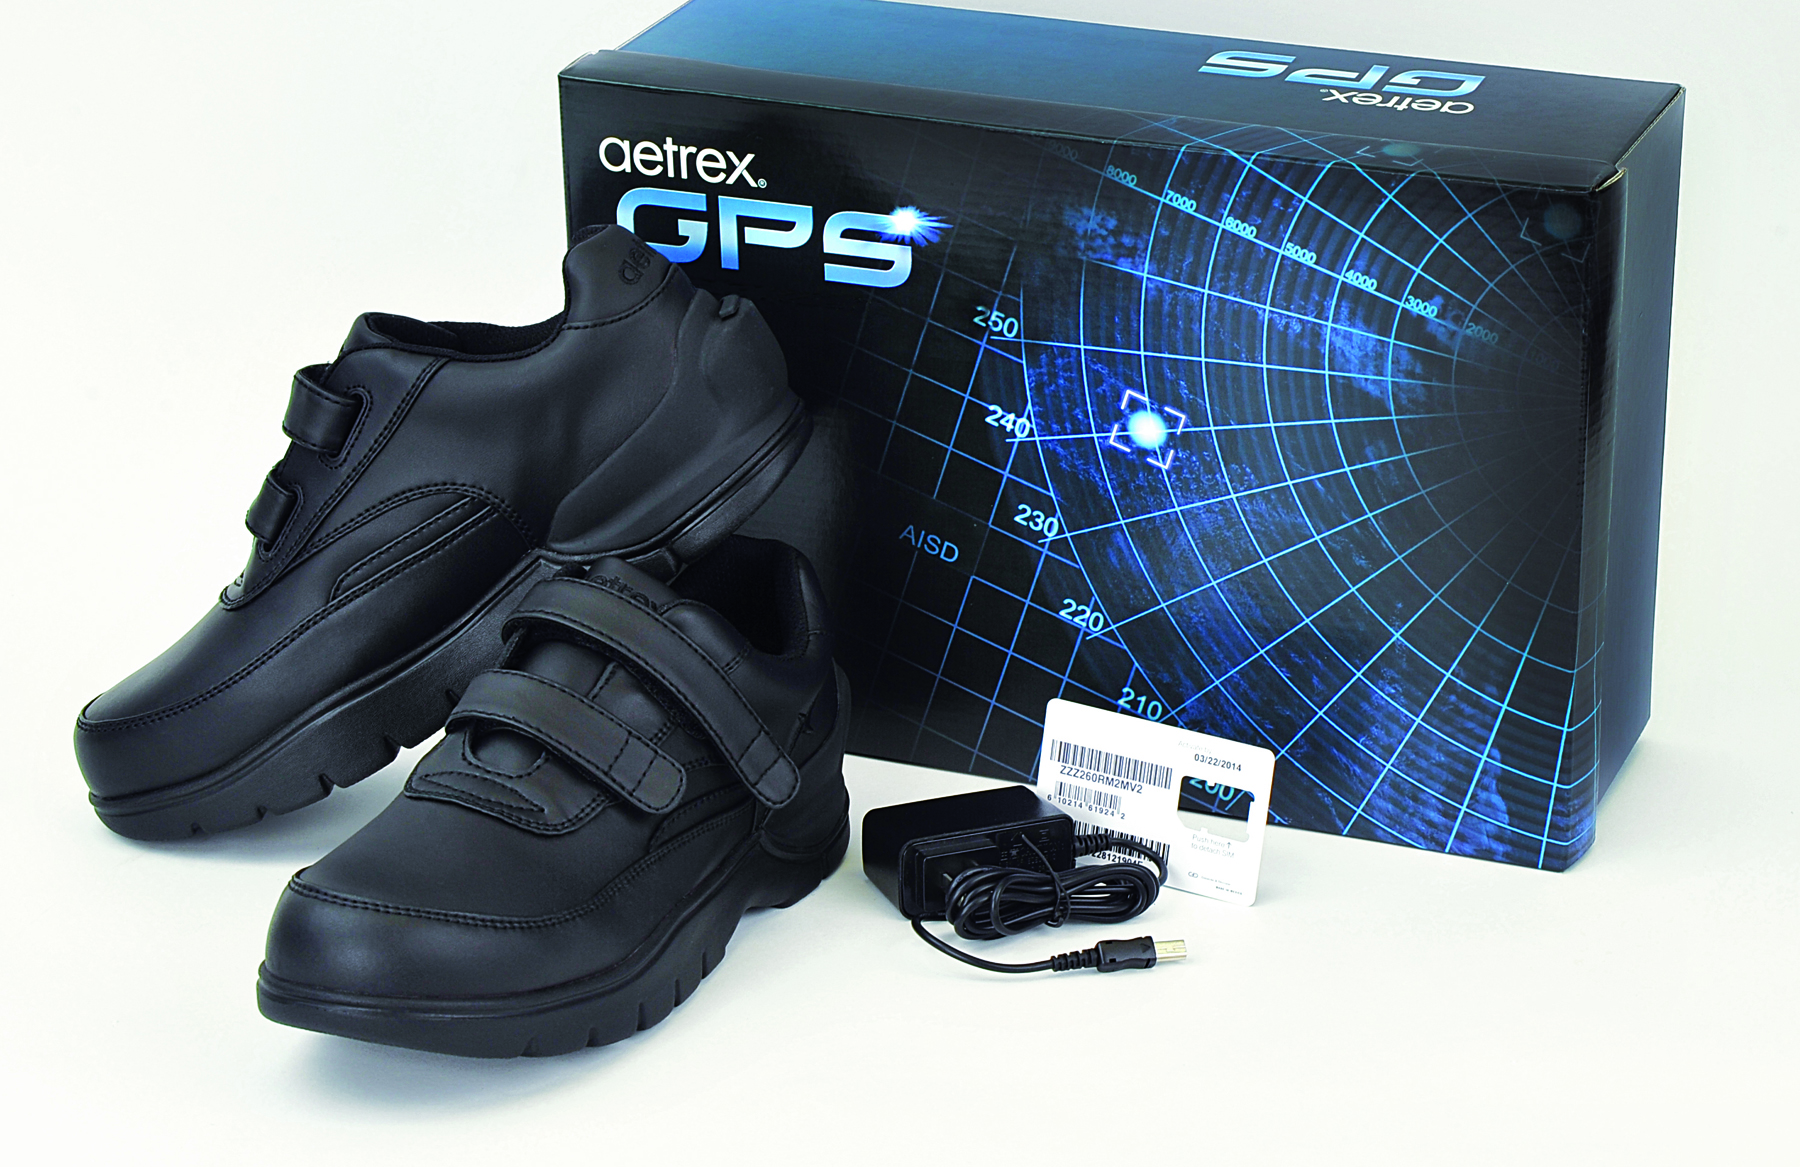 GPS Tracker Built-in Shoe